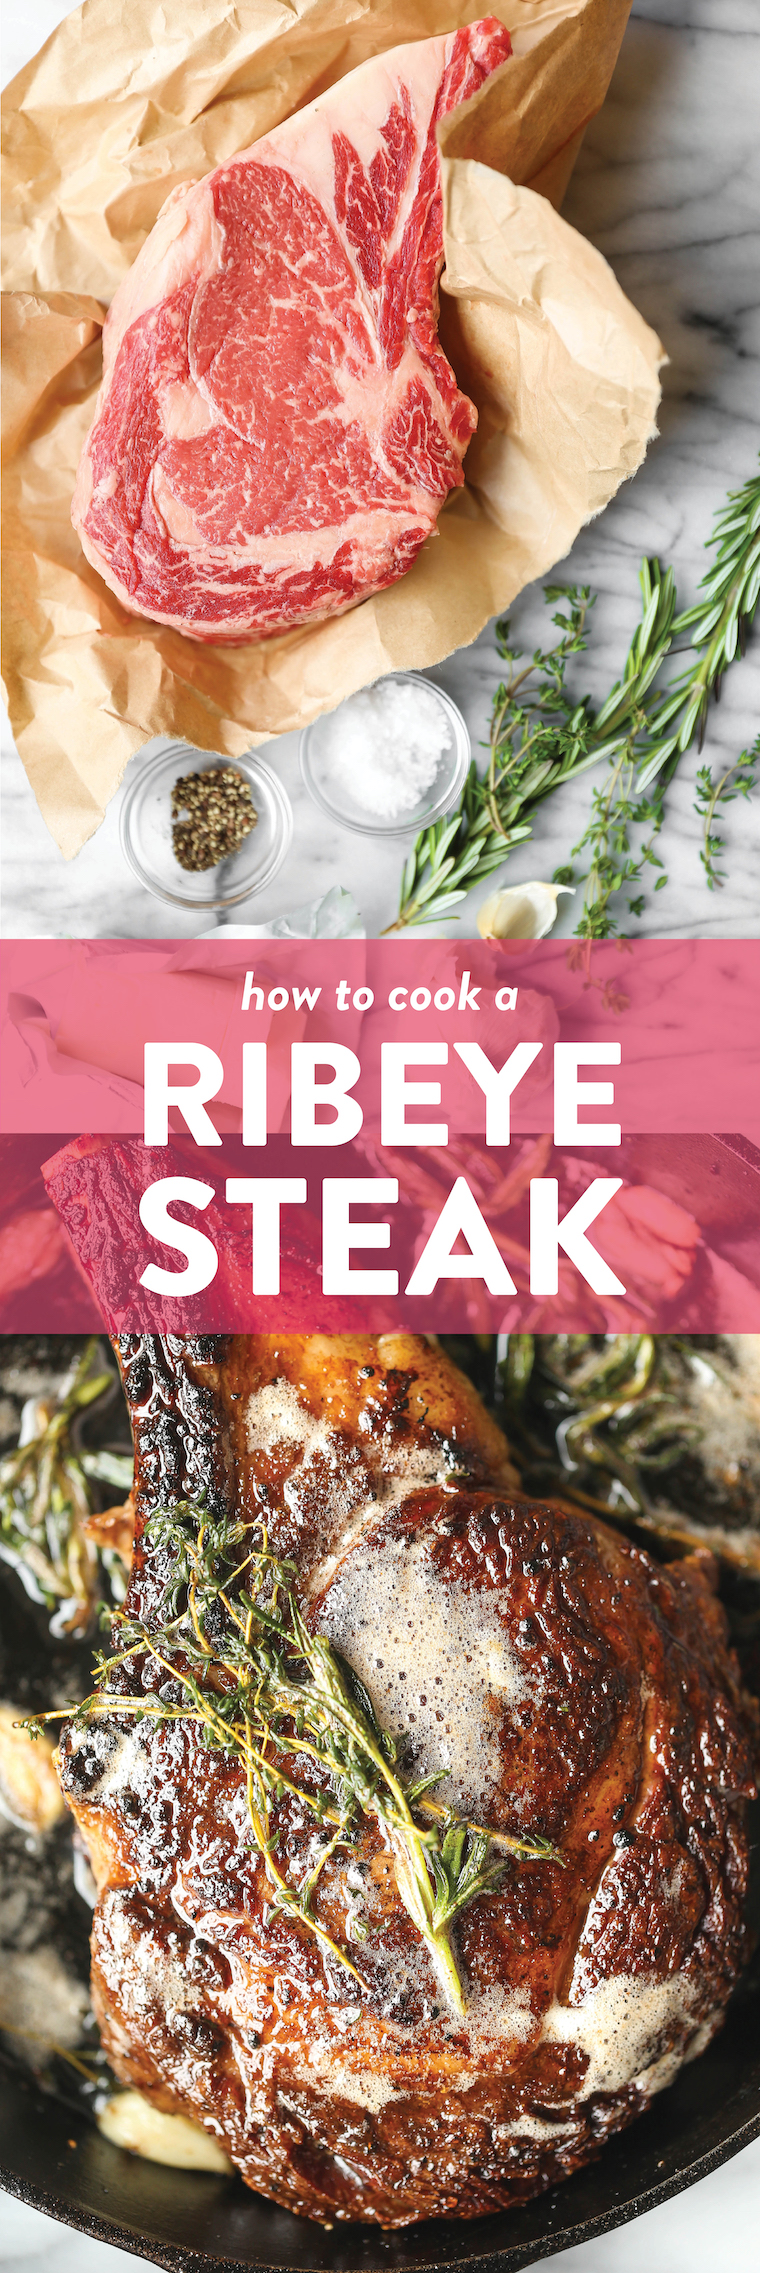 How to Cook a Ribeye Steak | Recipe in 2020 (With images ...